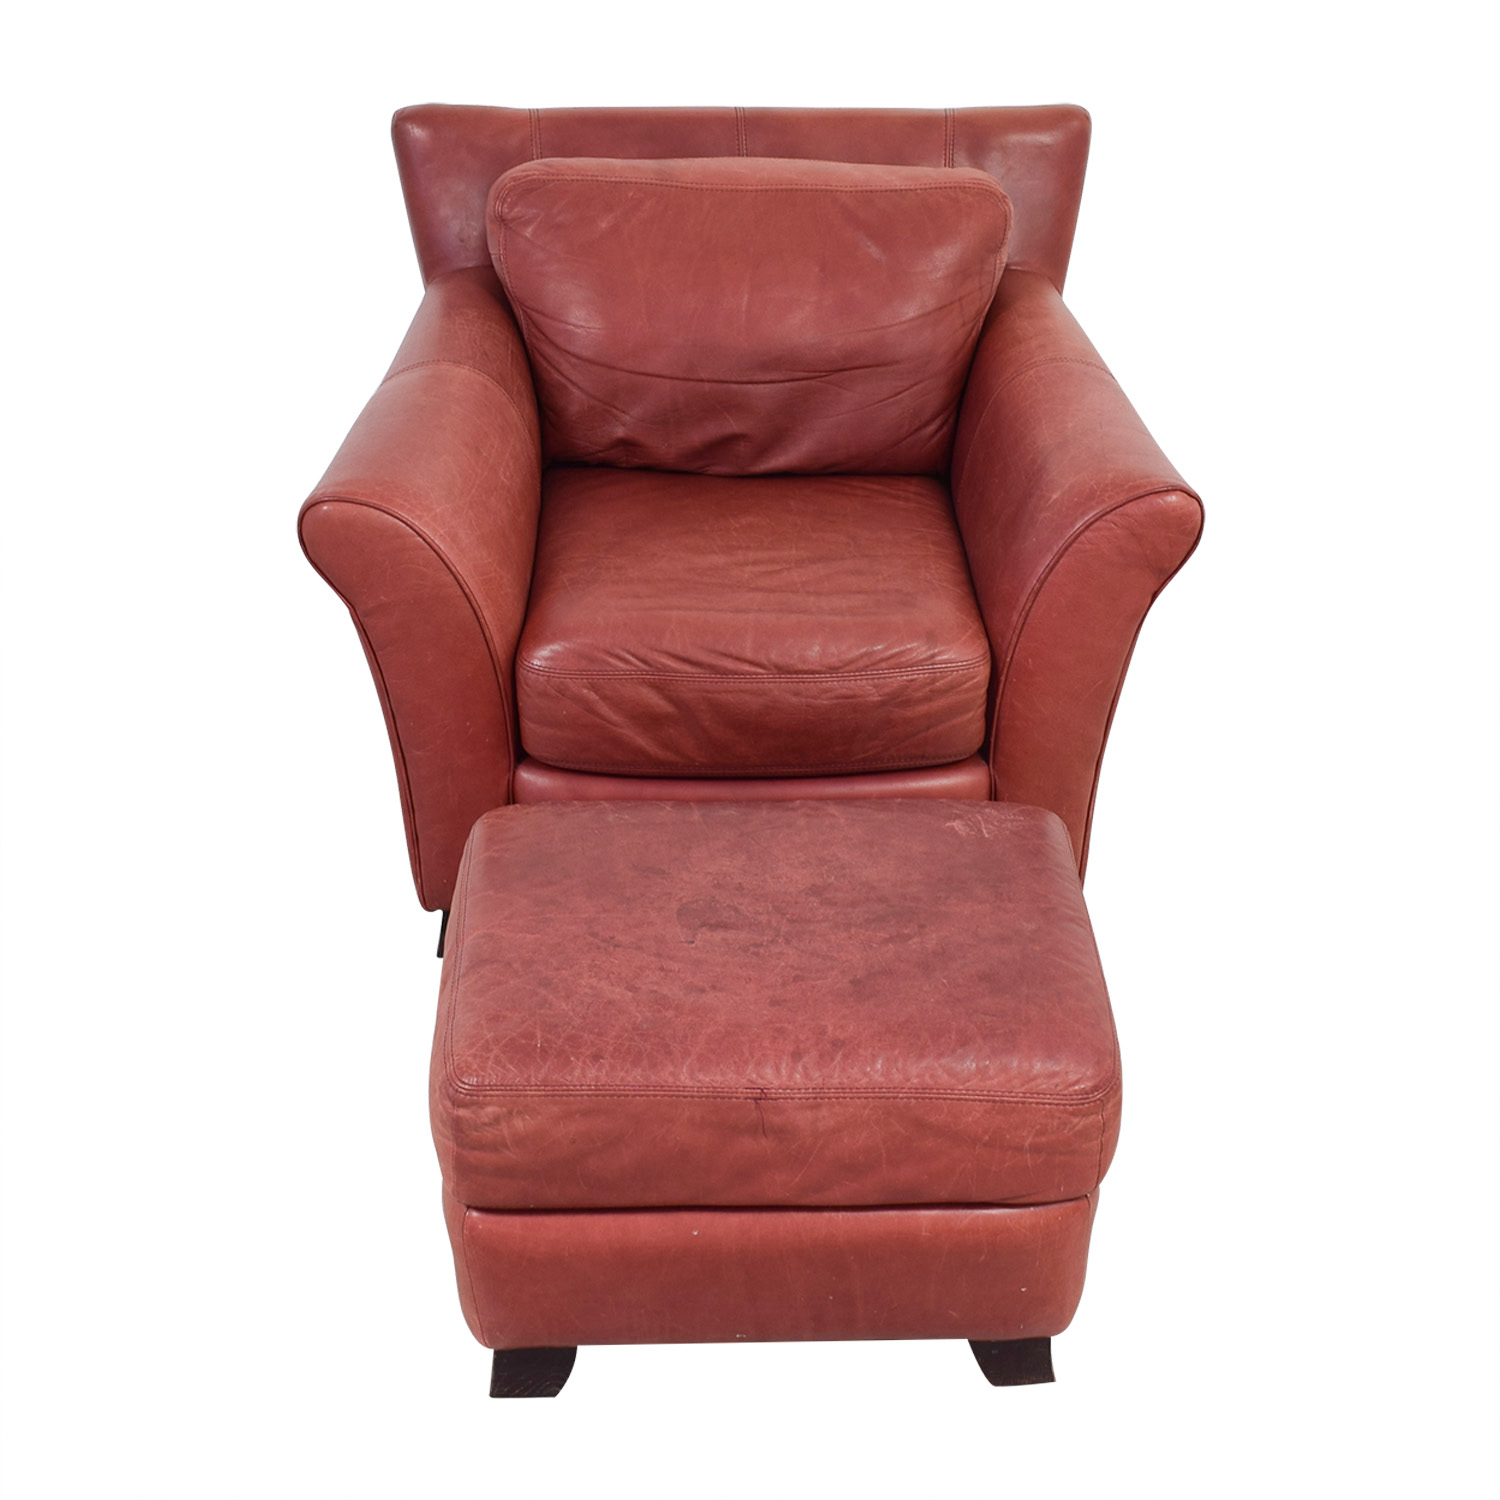 Palliser Palliser Red Leather Chair and Ottoman on sale